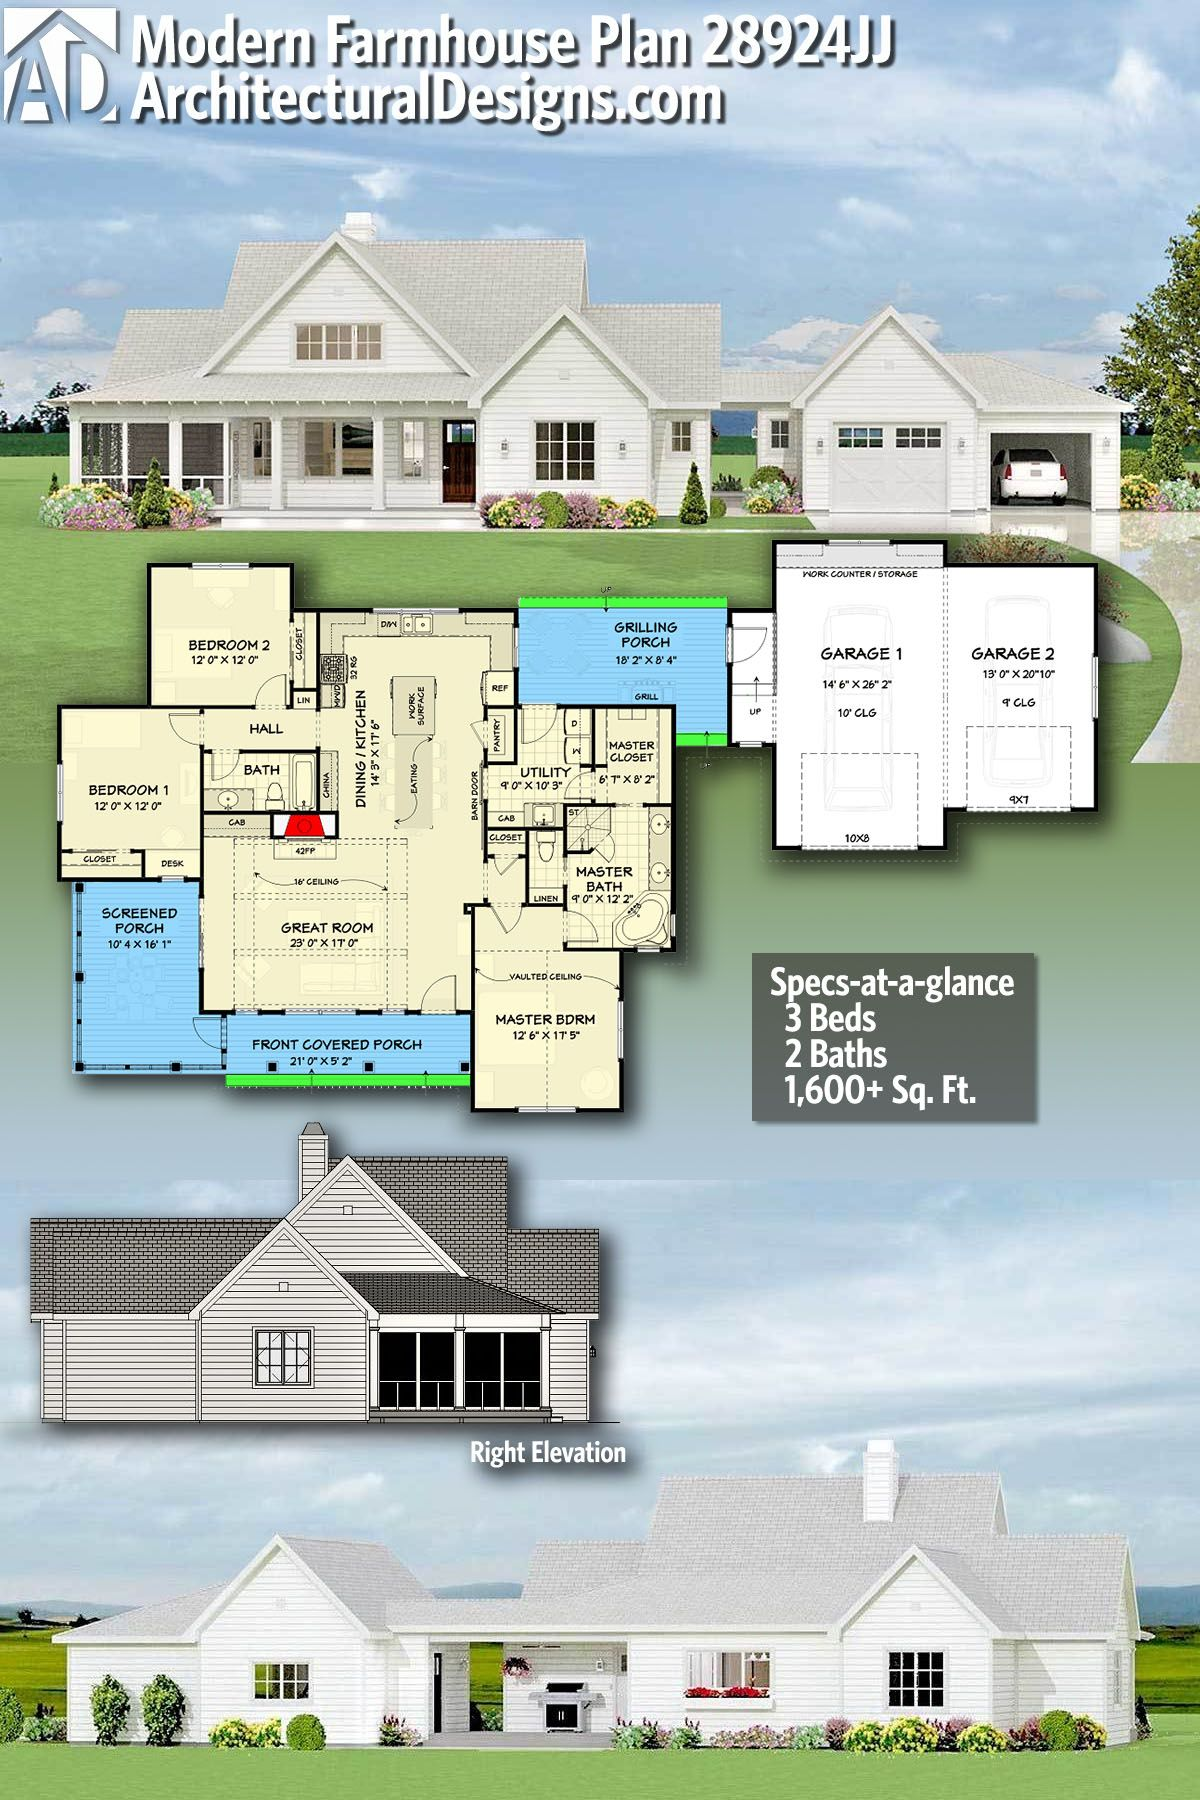 Plan 28924jj Modern Farmhouse With Semi Attached Garage Farmhouse Plans Small Farmhouse Plans Country House Plans